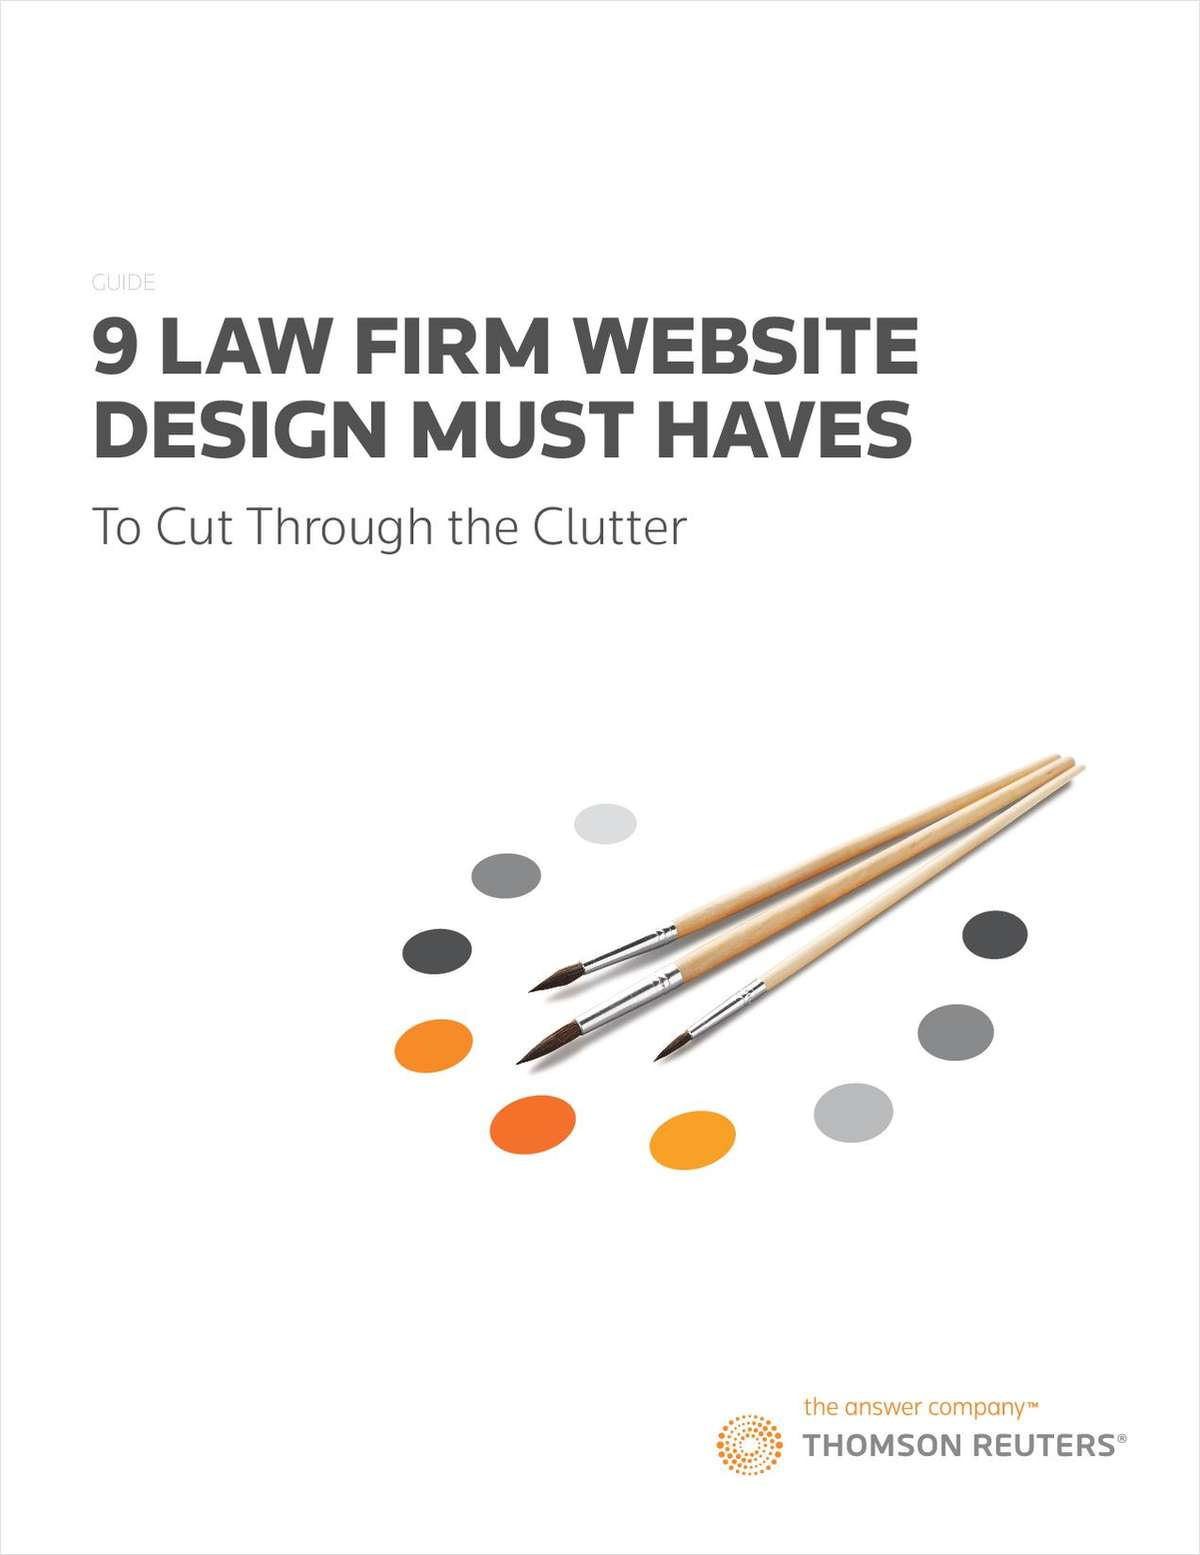 Not all websites are created alike. Learn more with this guide about the website elements that can help your firm get (and keep) search engines' attention, convey your brand and value proposition and connect with prospective clients.